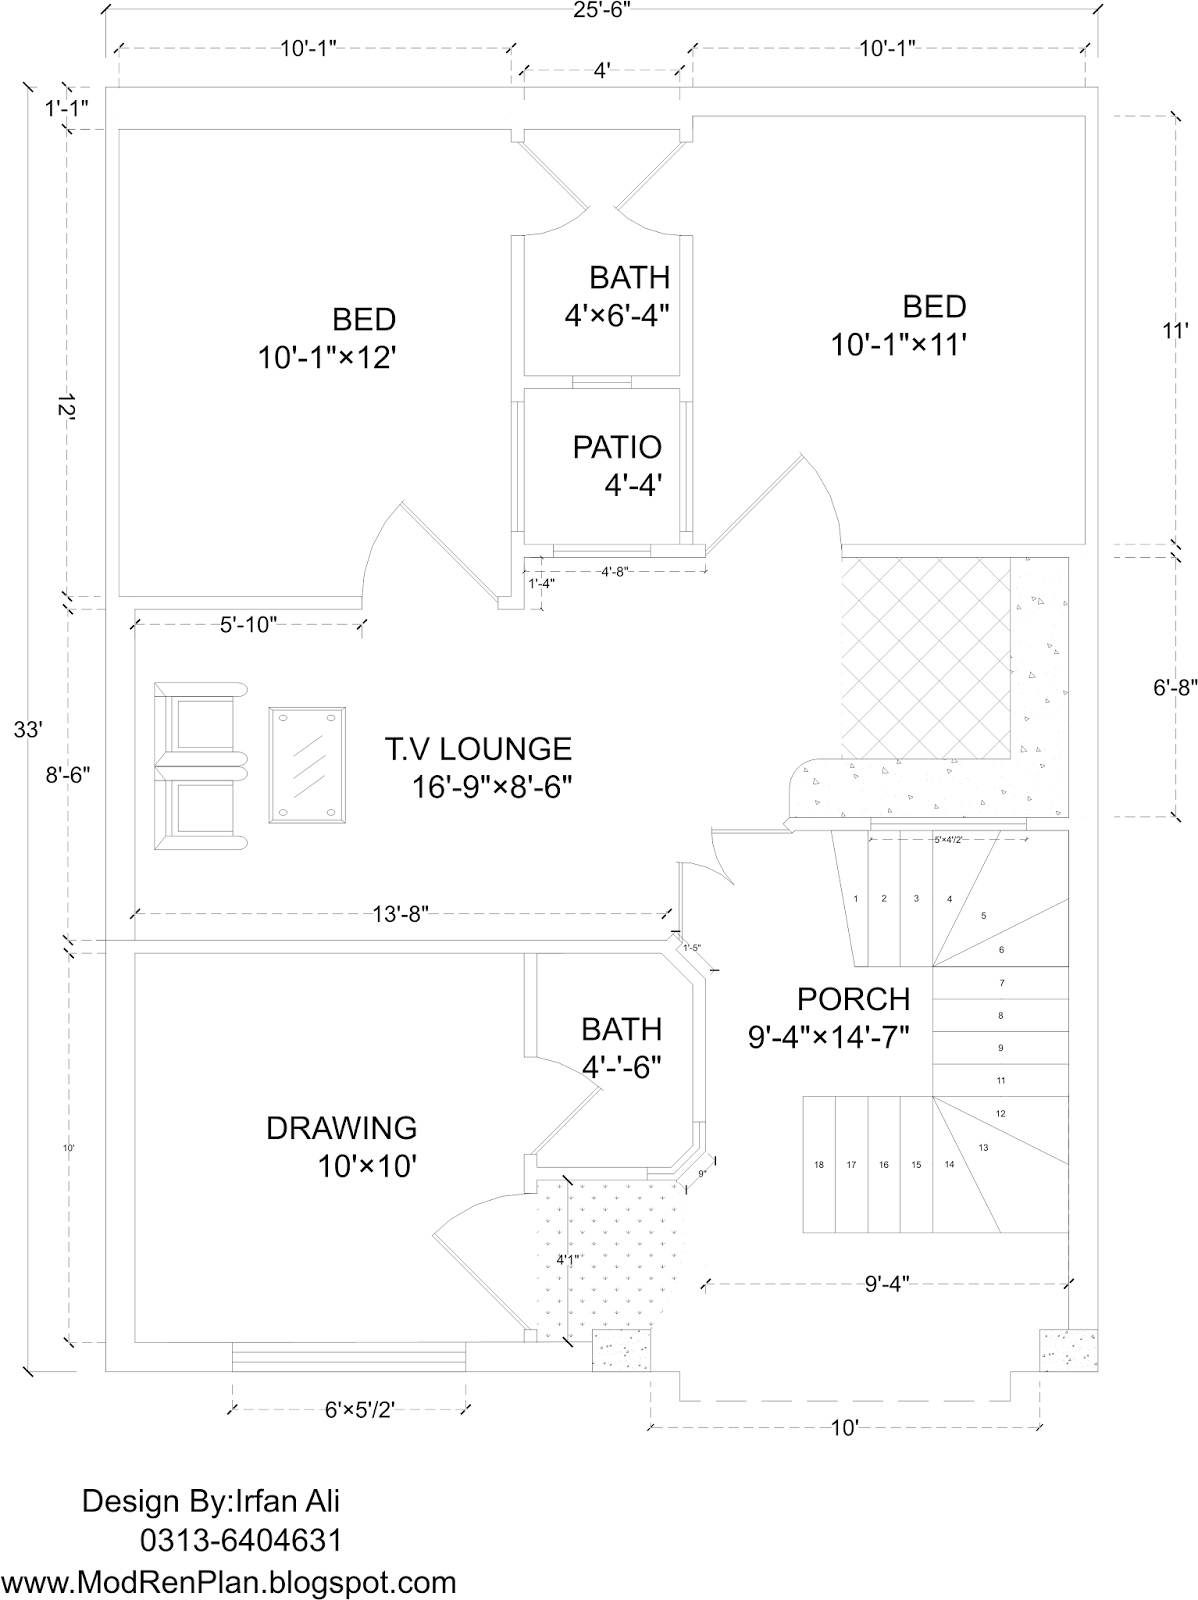 5 marla house plan and map with detail 25x33 house plan House map drawing images